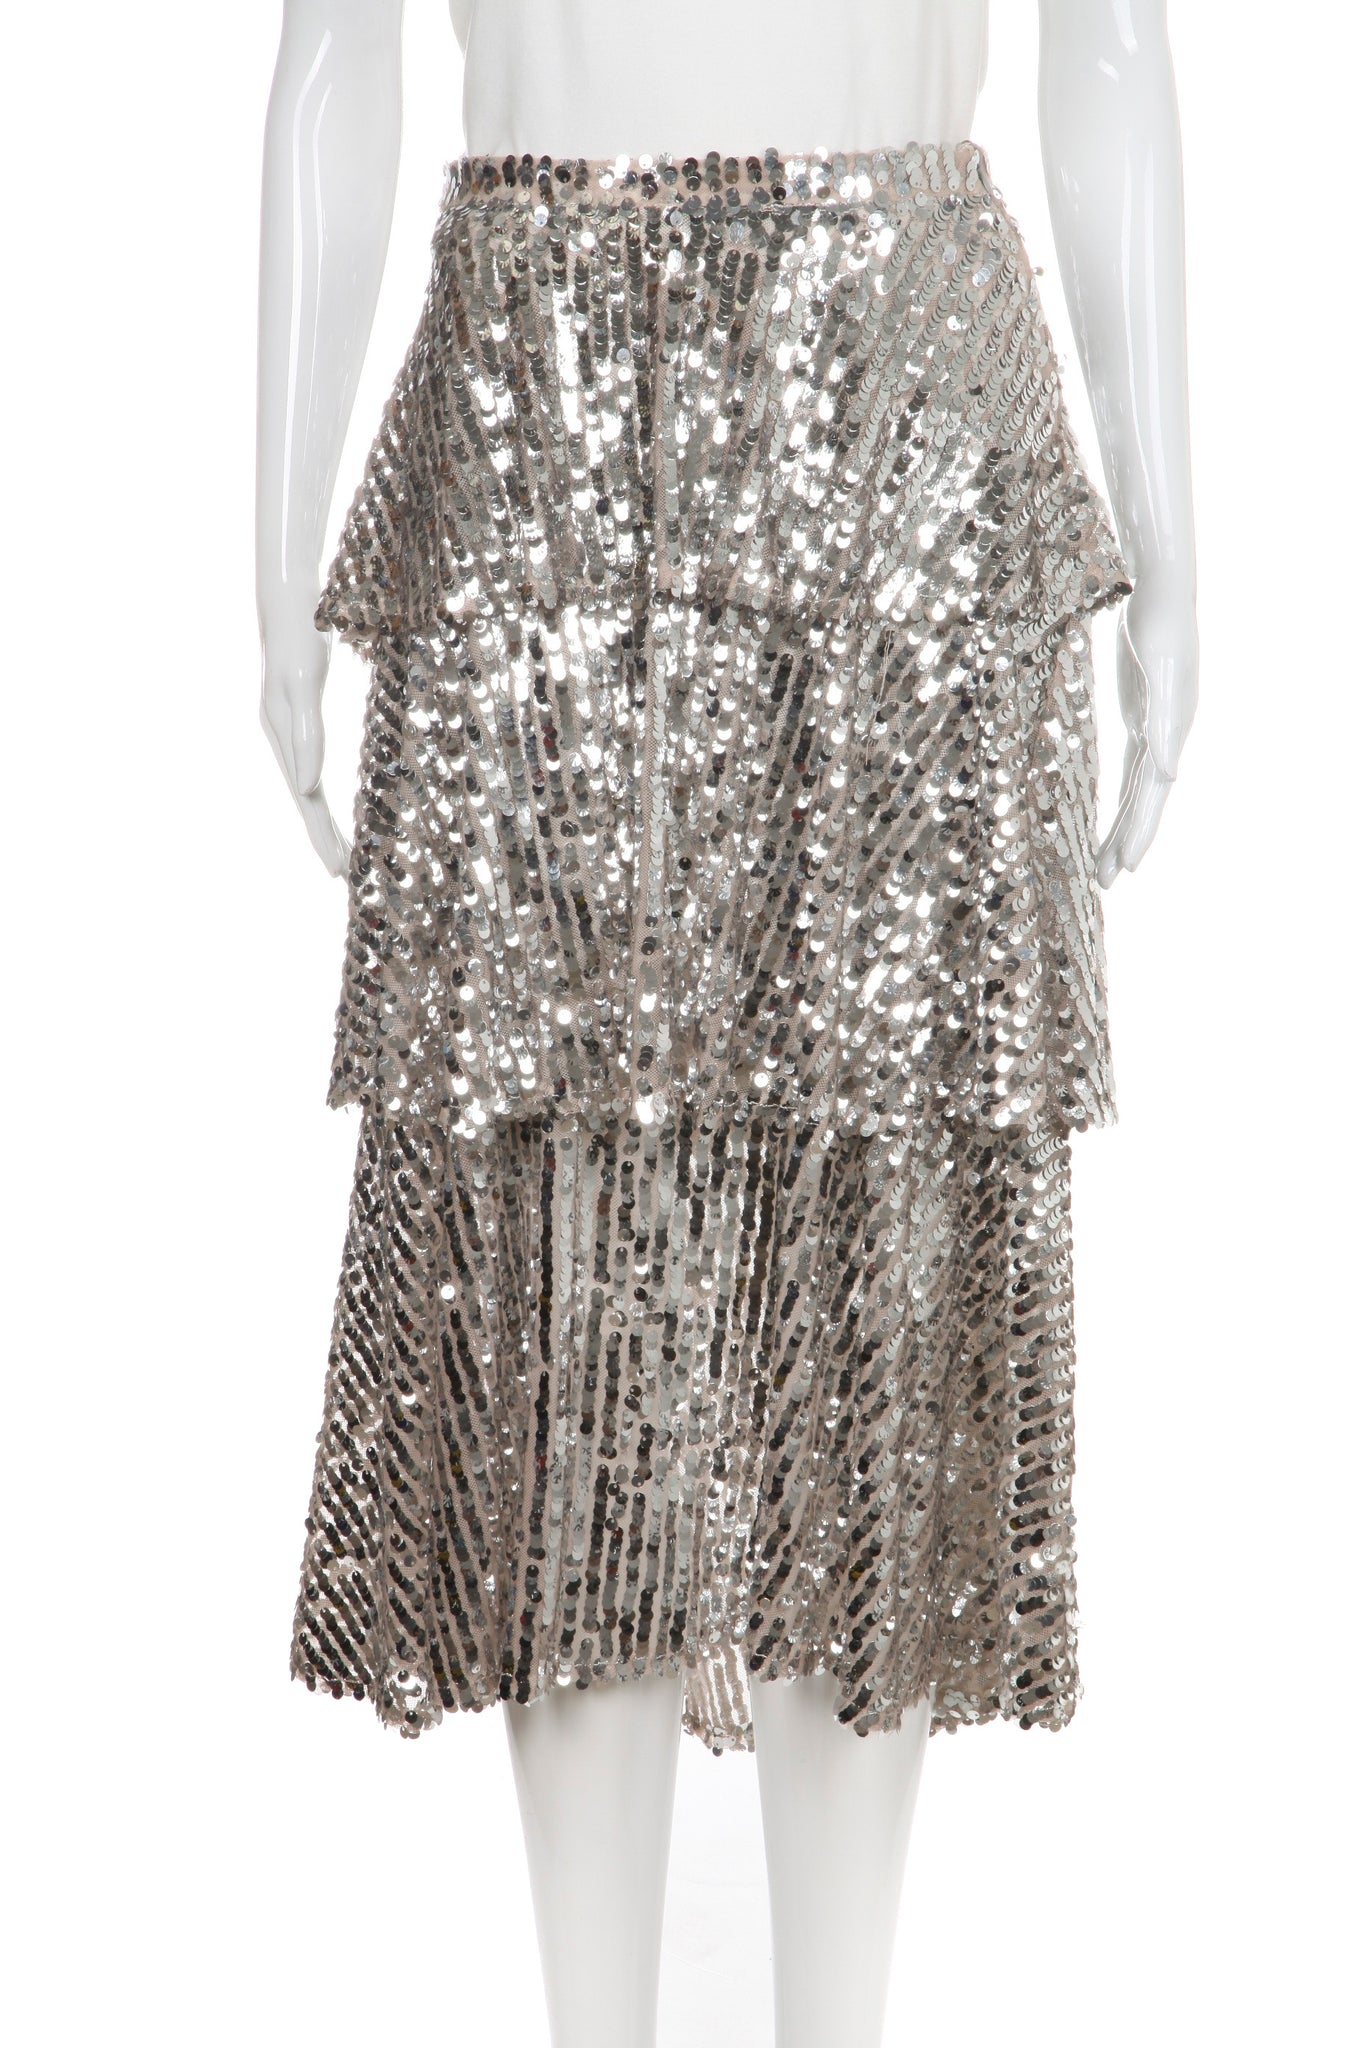 ZARA Skirt Silver Sequin Embellished Tiered